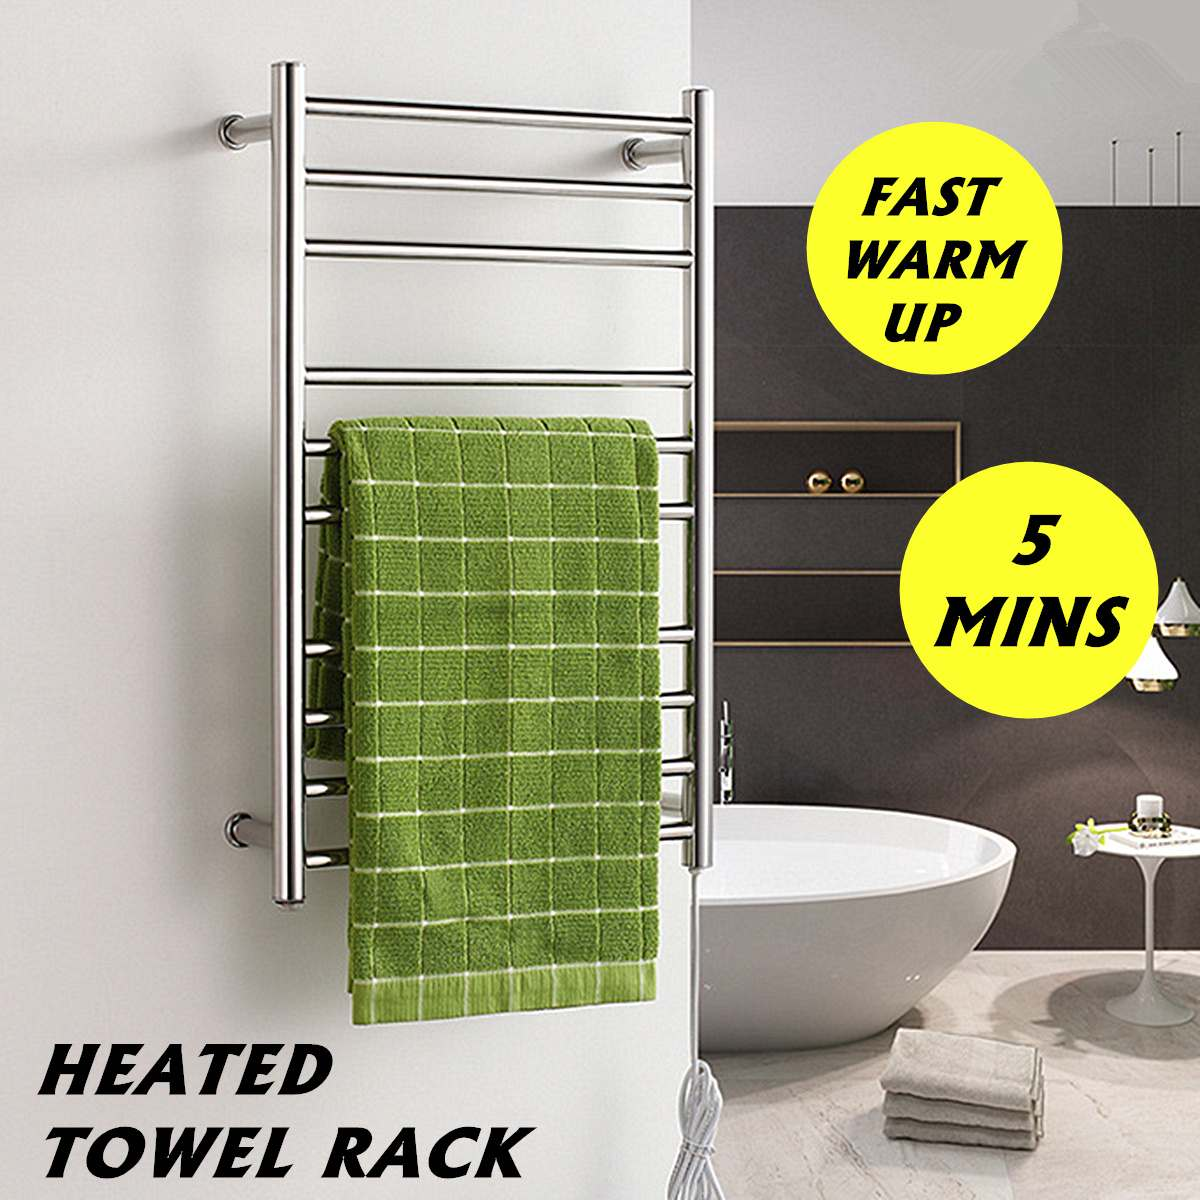 88W Stainless Steel Electric Heated Wall Mounted Towel Warmer Home Bathroom Accessories Towel Dryer Racks Heated Towel Rail88W Stainless Steel Electric Heated Wall Mounted Towel Warmer Home Bathroom Accessories Towel Dryer Racks Heated Towel Rail